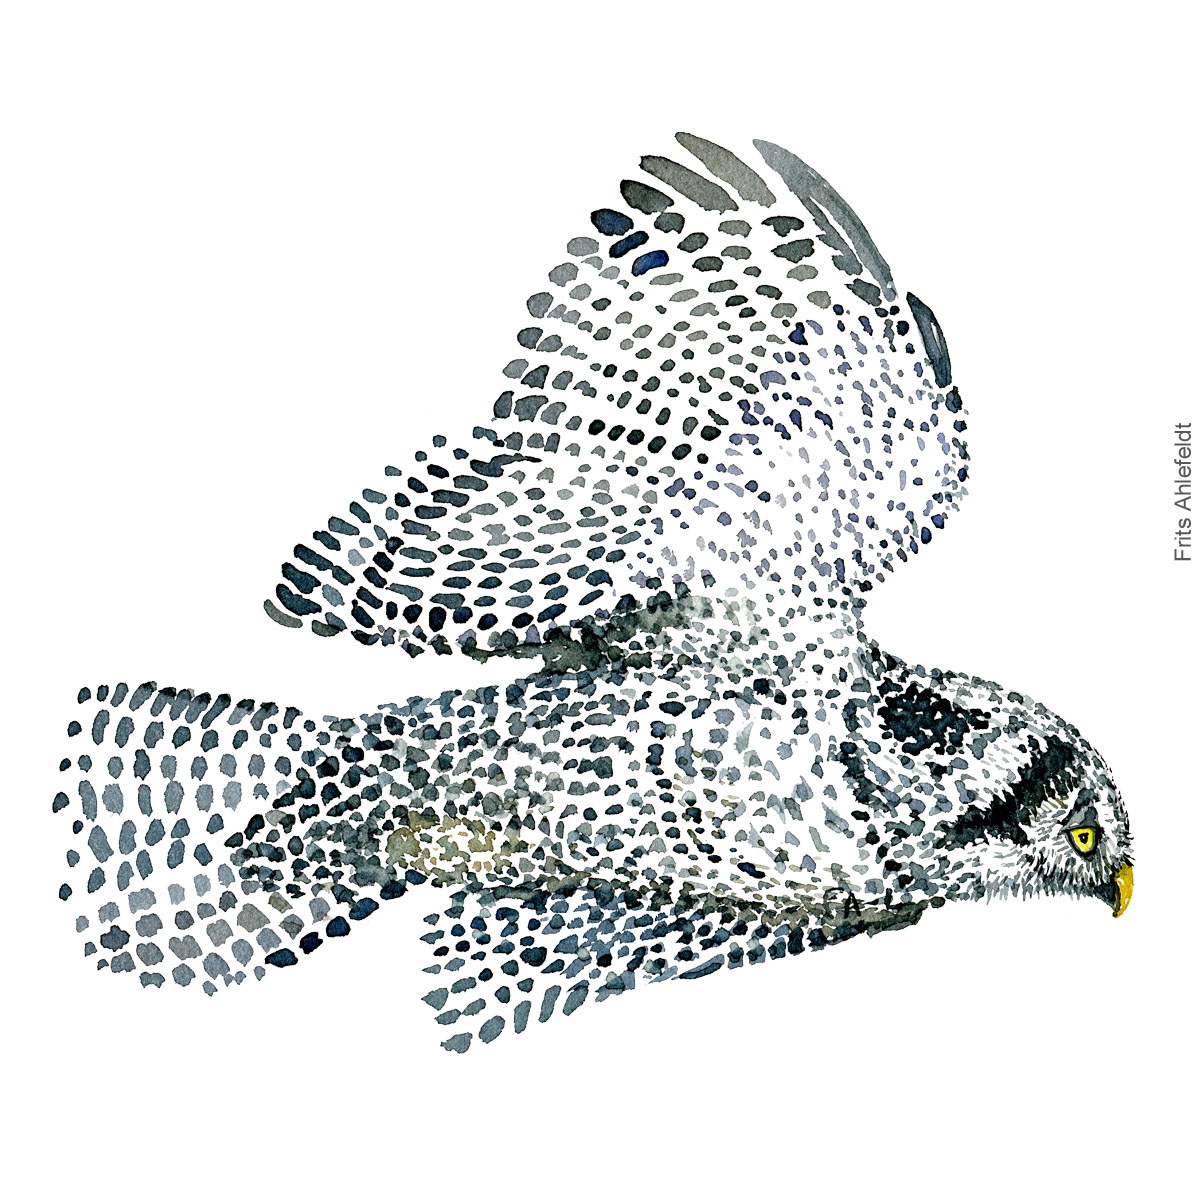 Dw00340 Northern hawk owl ( Surnia ulula, Høgeugle ) Bird painting in watercolor by Frits Ahlefeldt - Fugle akvarel